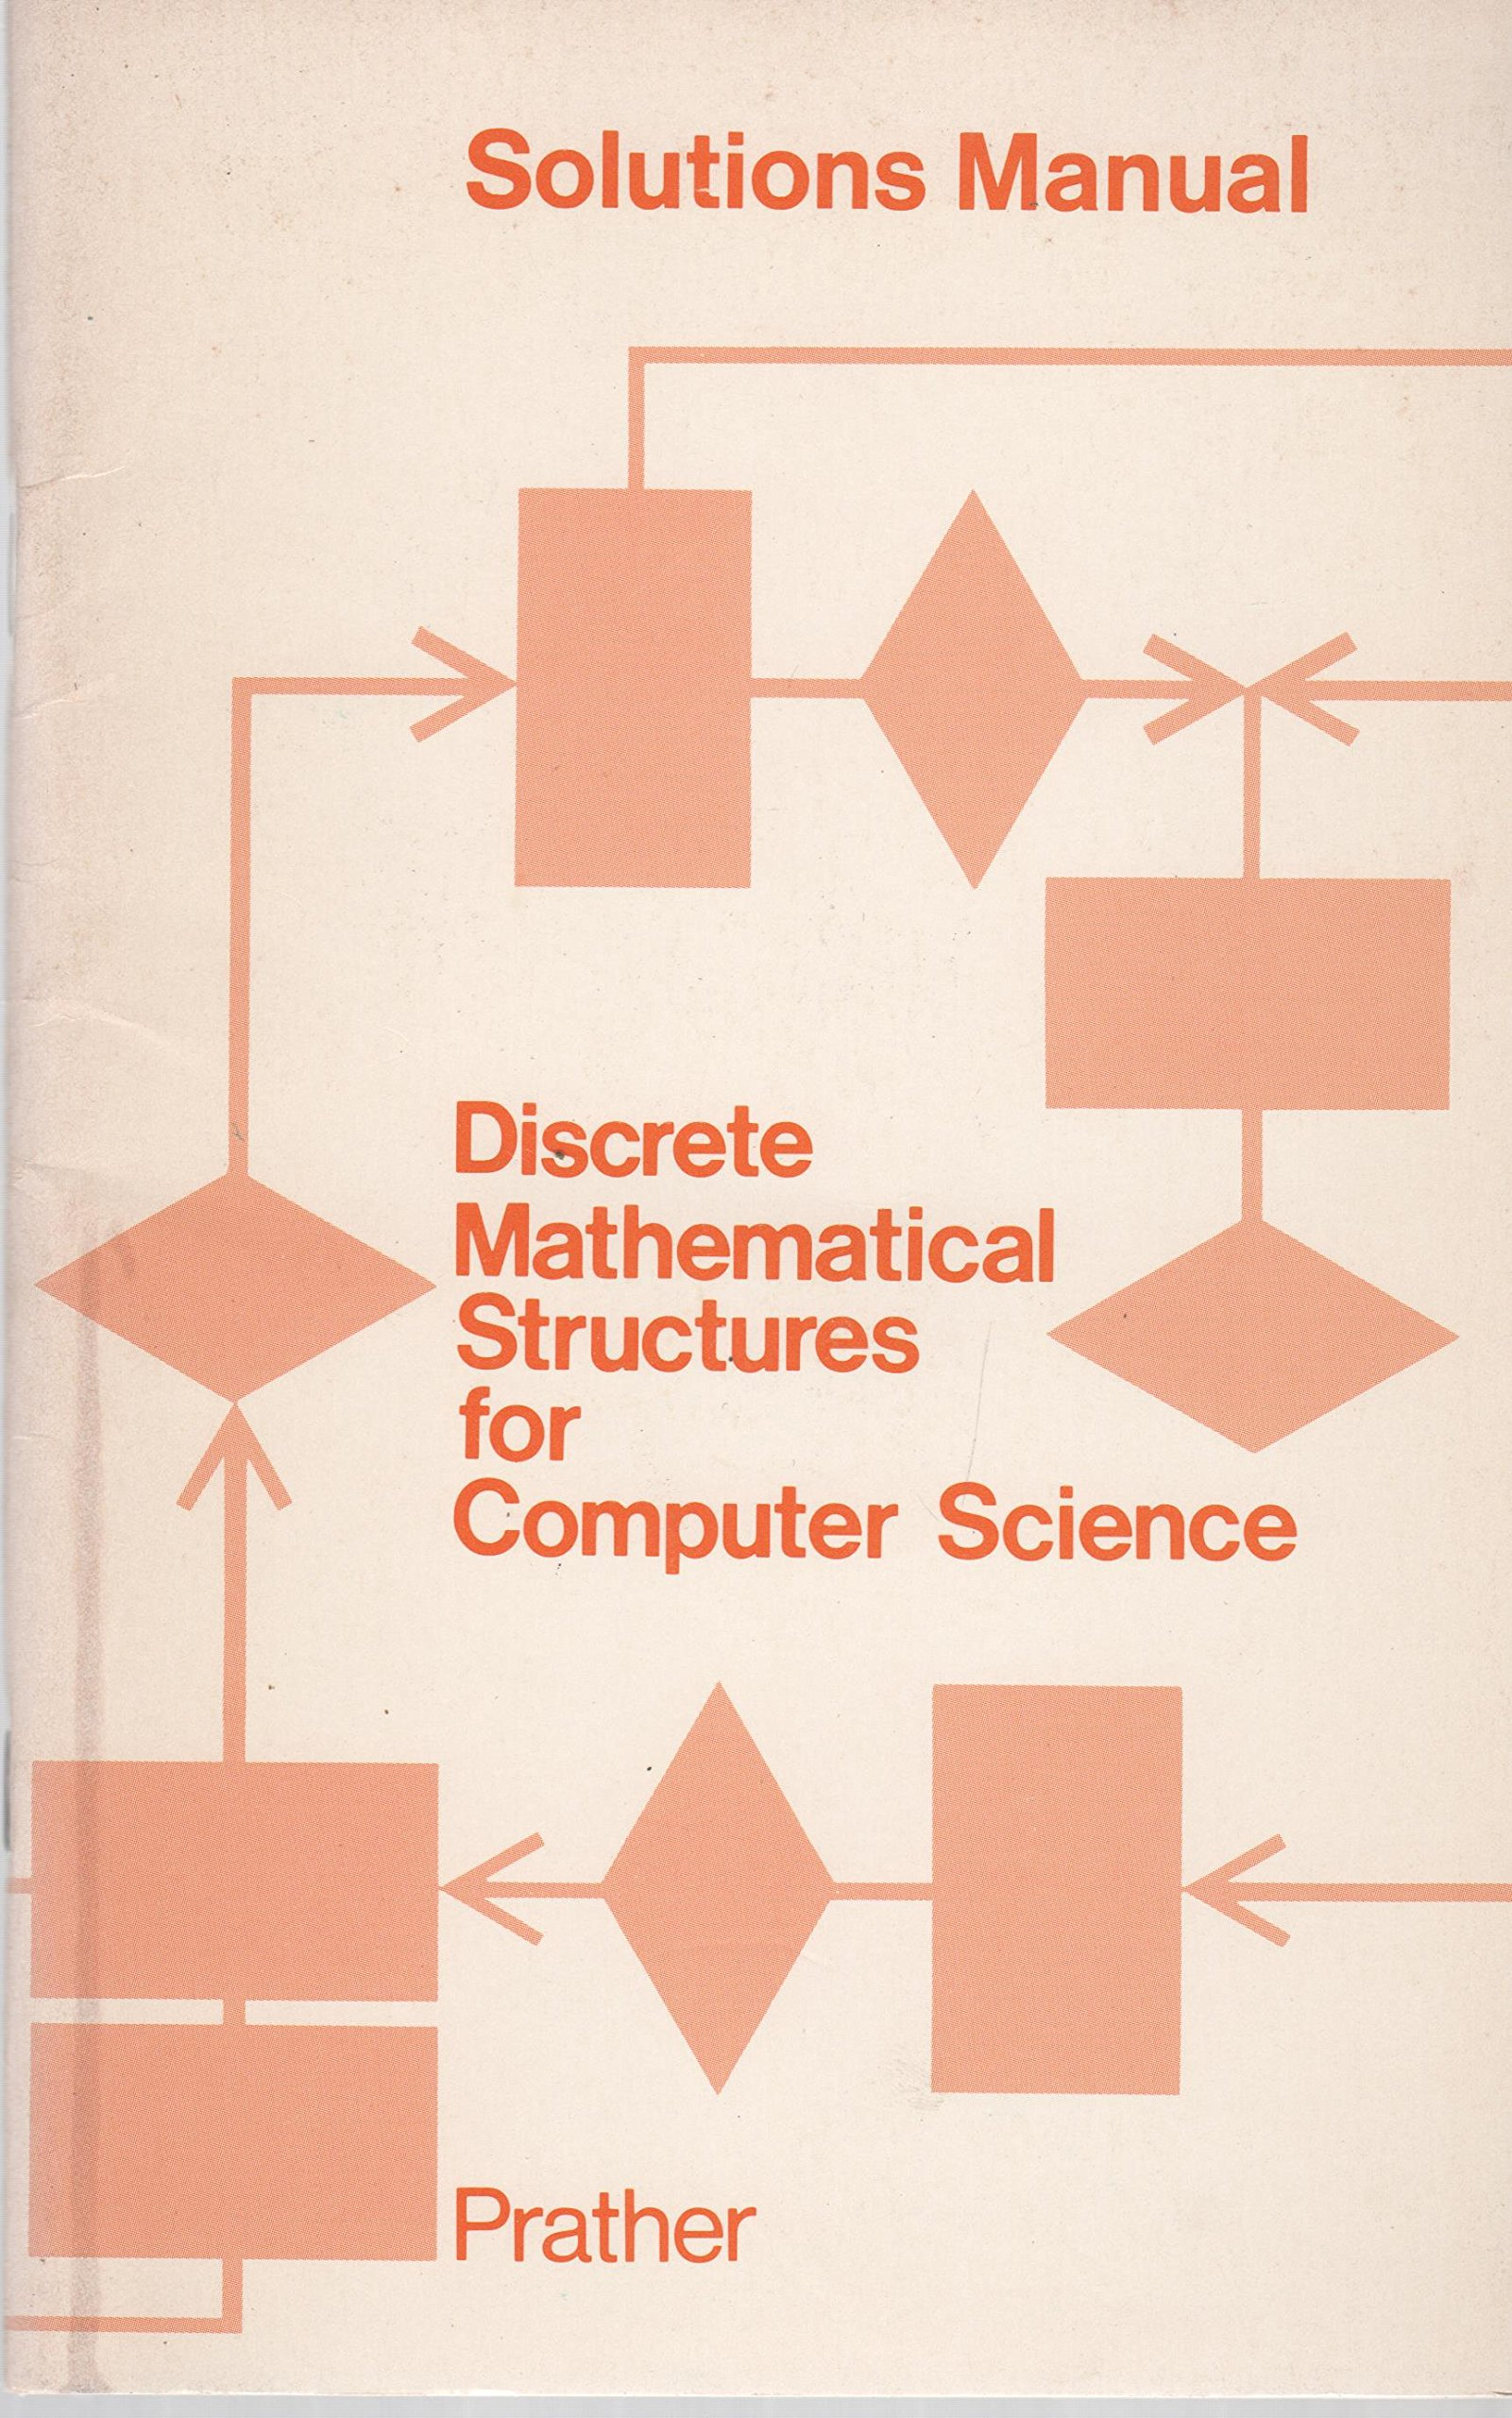 Solutions Manual Discrete Mathematical Structures for Computer Science:  9780395206232: Amazon.com: Books